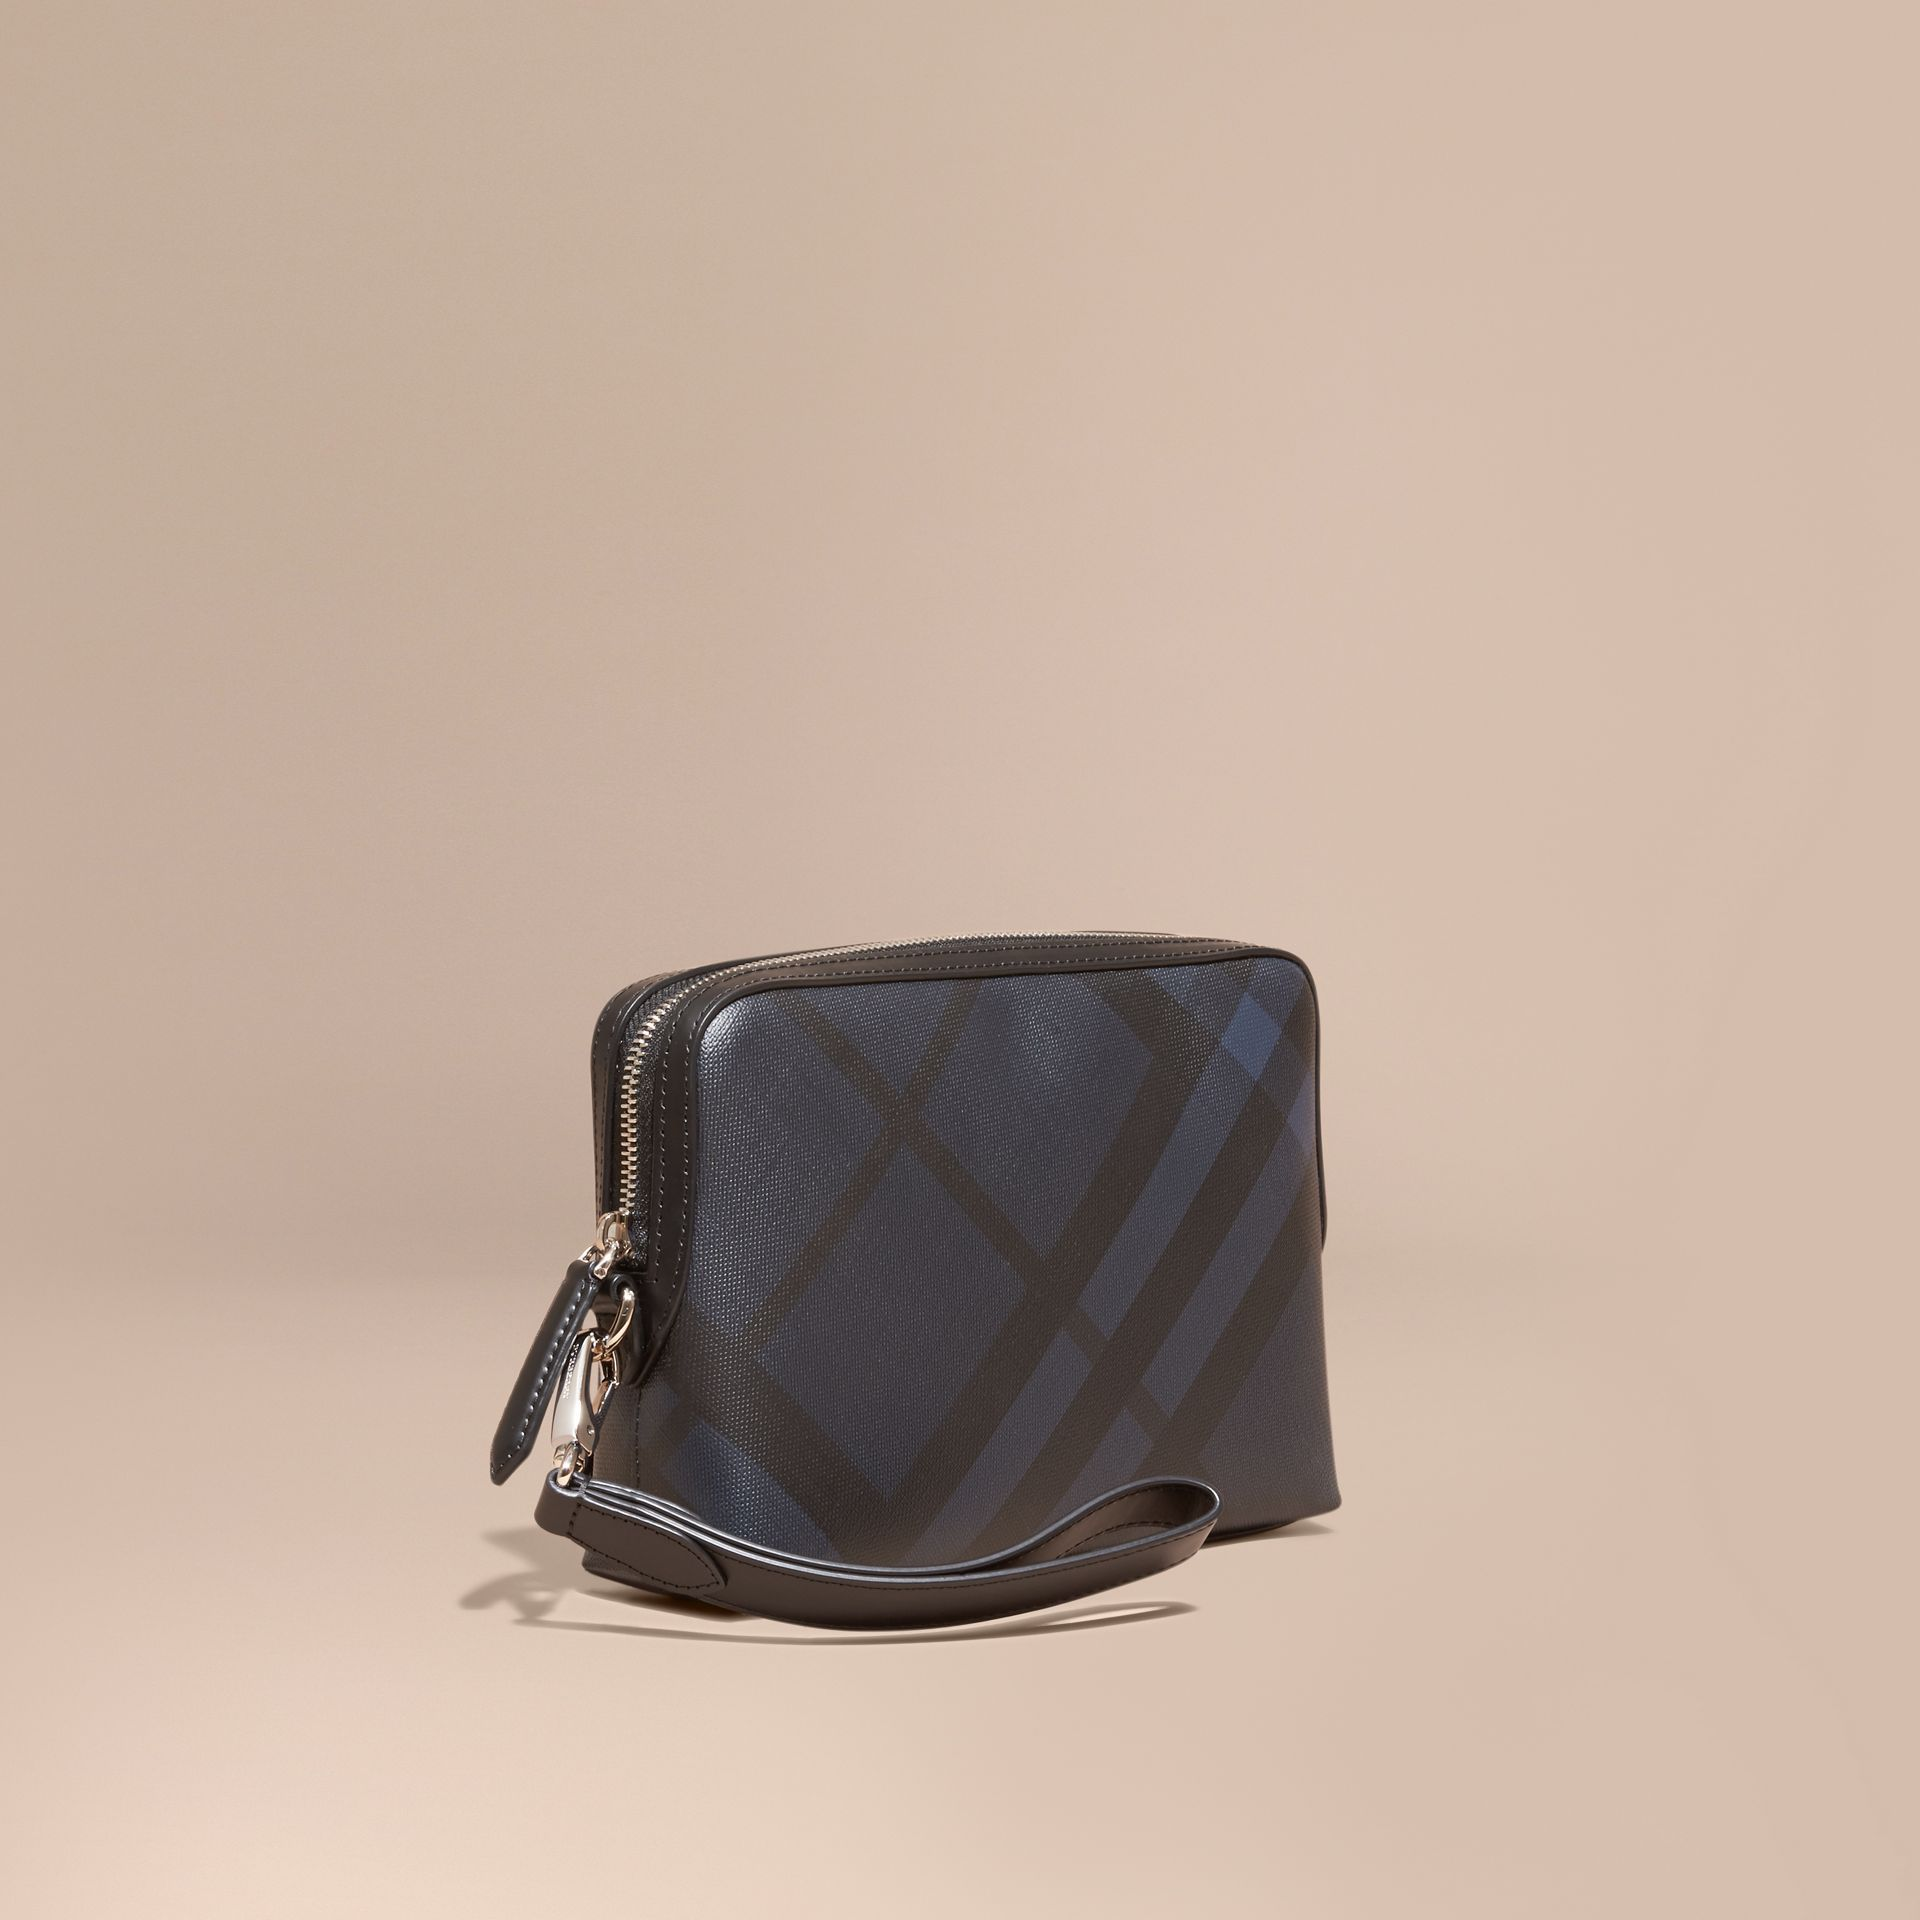 Navy/black Leather-trimmed London Check Pouch Navy/black - gallery image 1